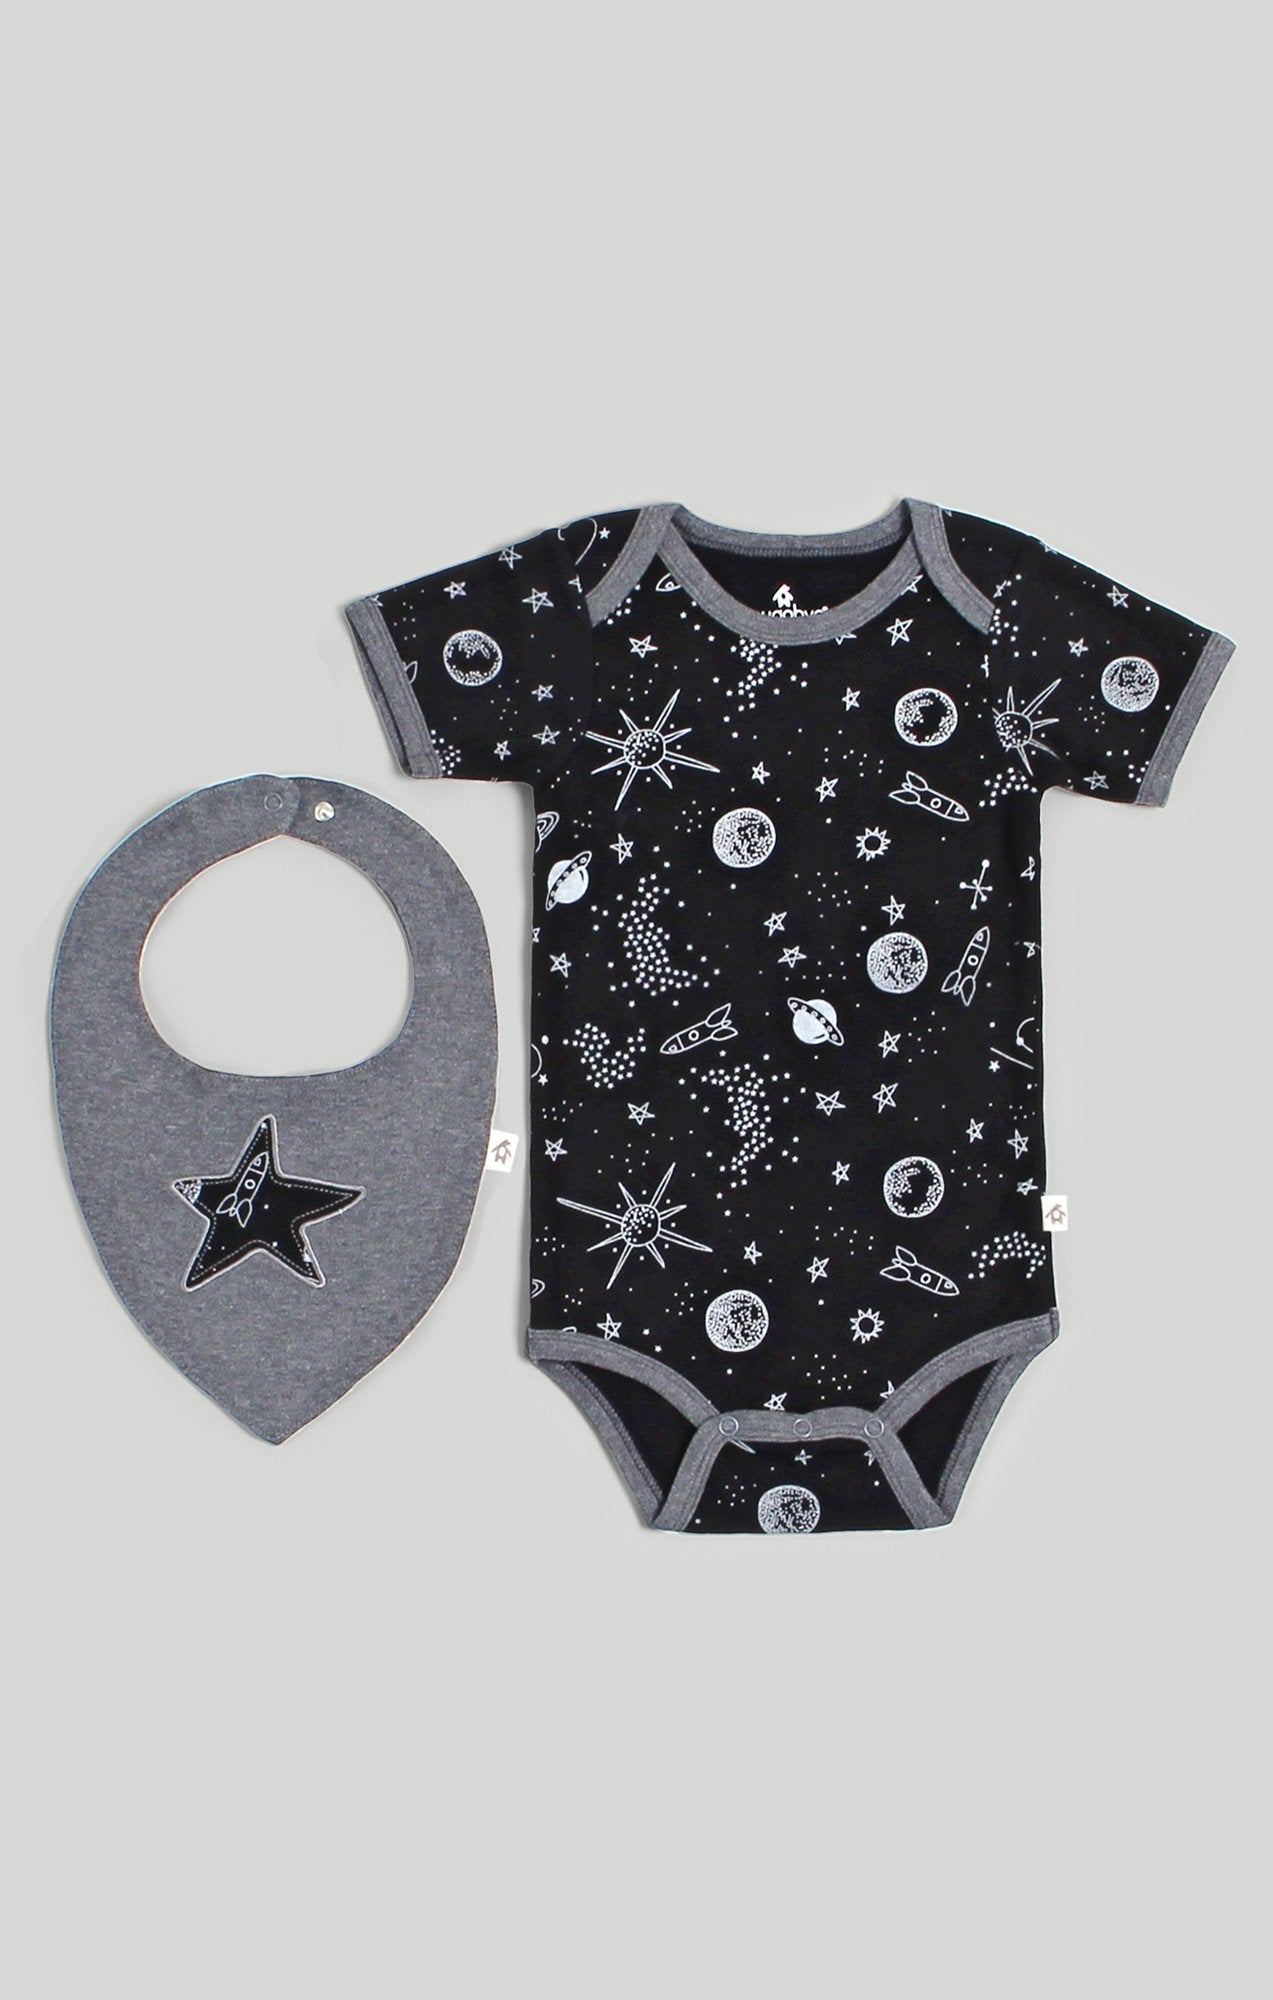 Baby Clothes | Space Baby Bodysuit